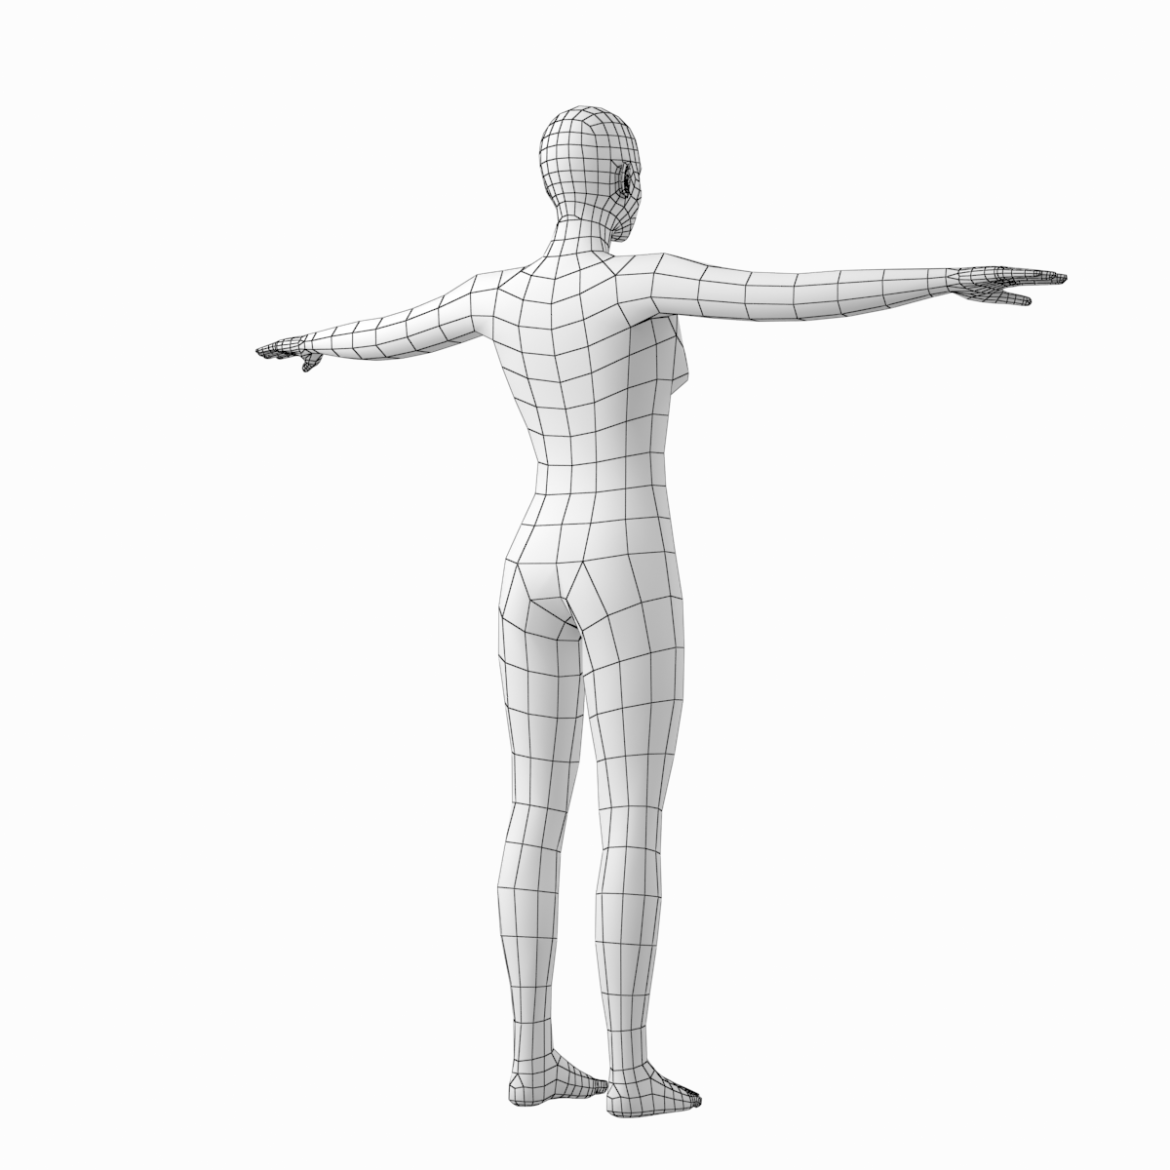 male and female base mesh in t-pose 3d model png stl obj ma mb max fbx dxf dwg dae c4d 3ds txt 305182